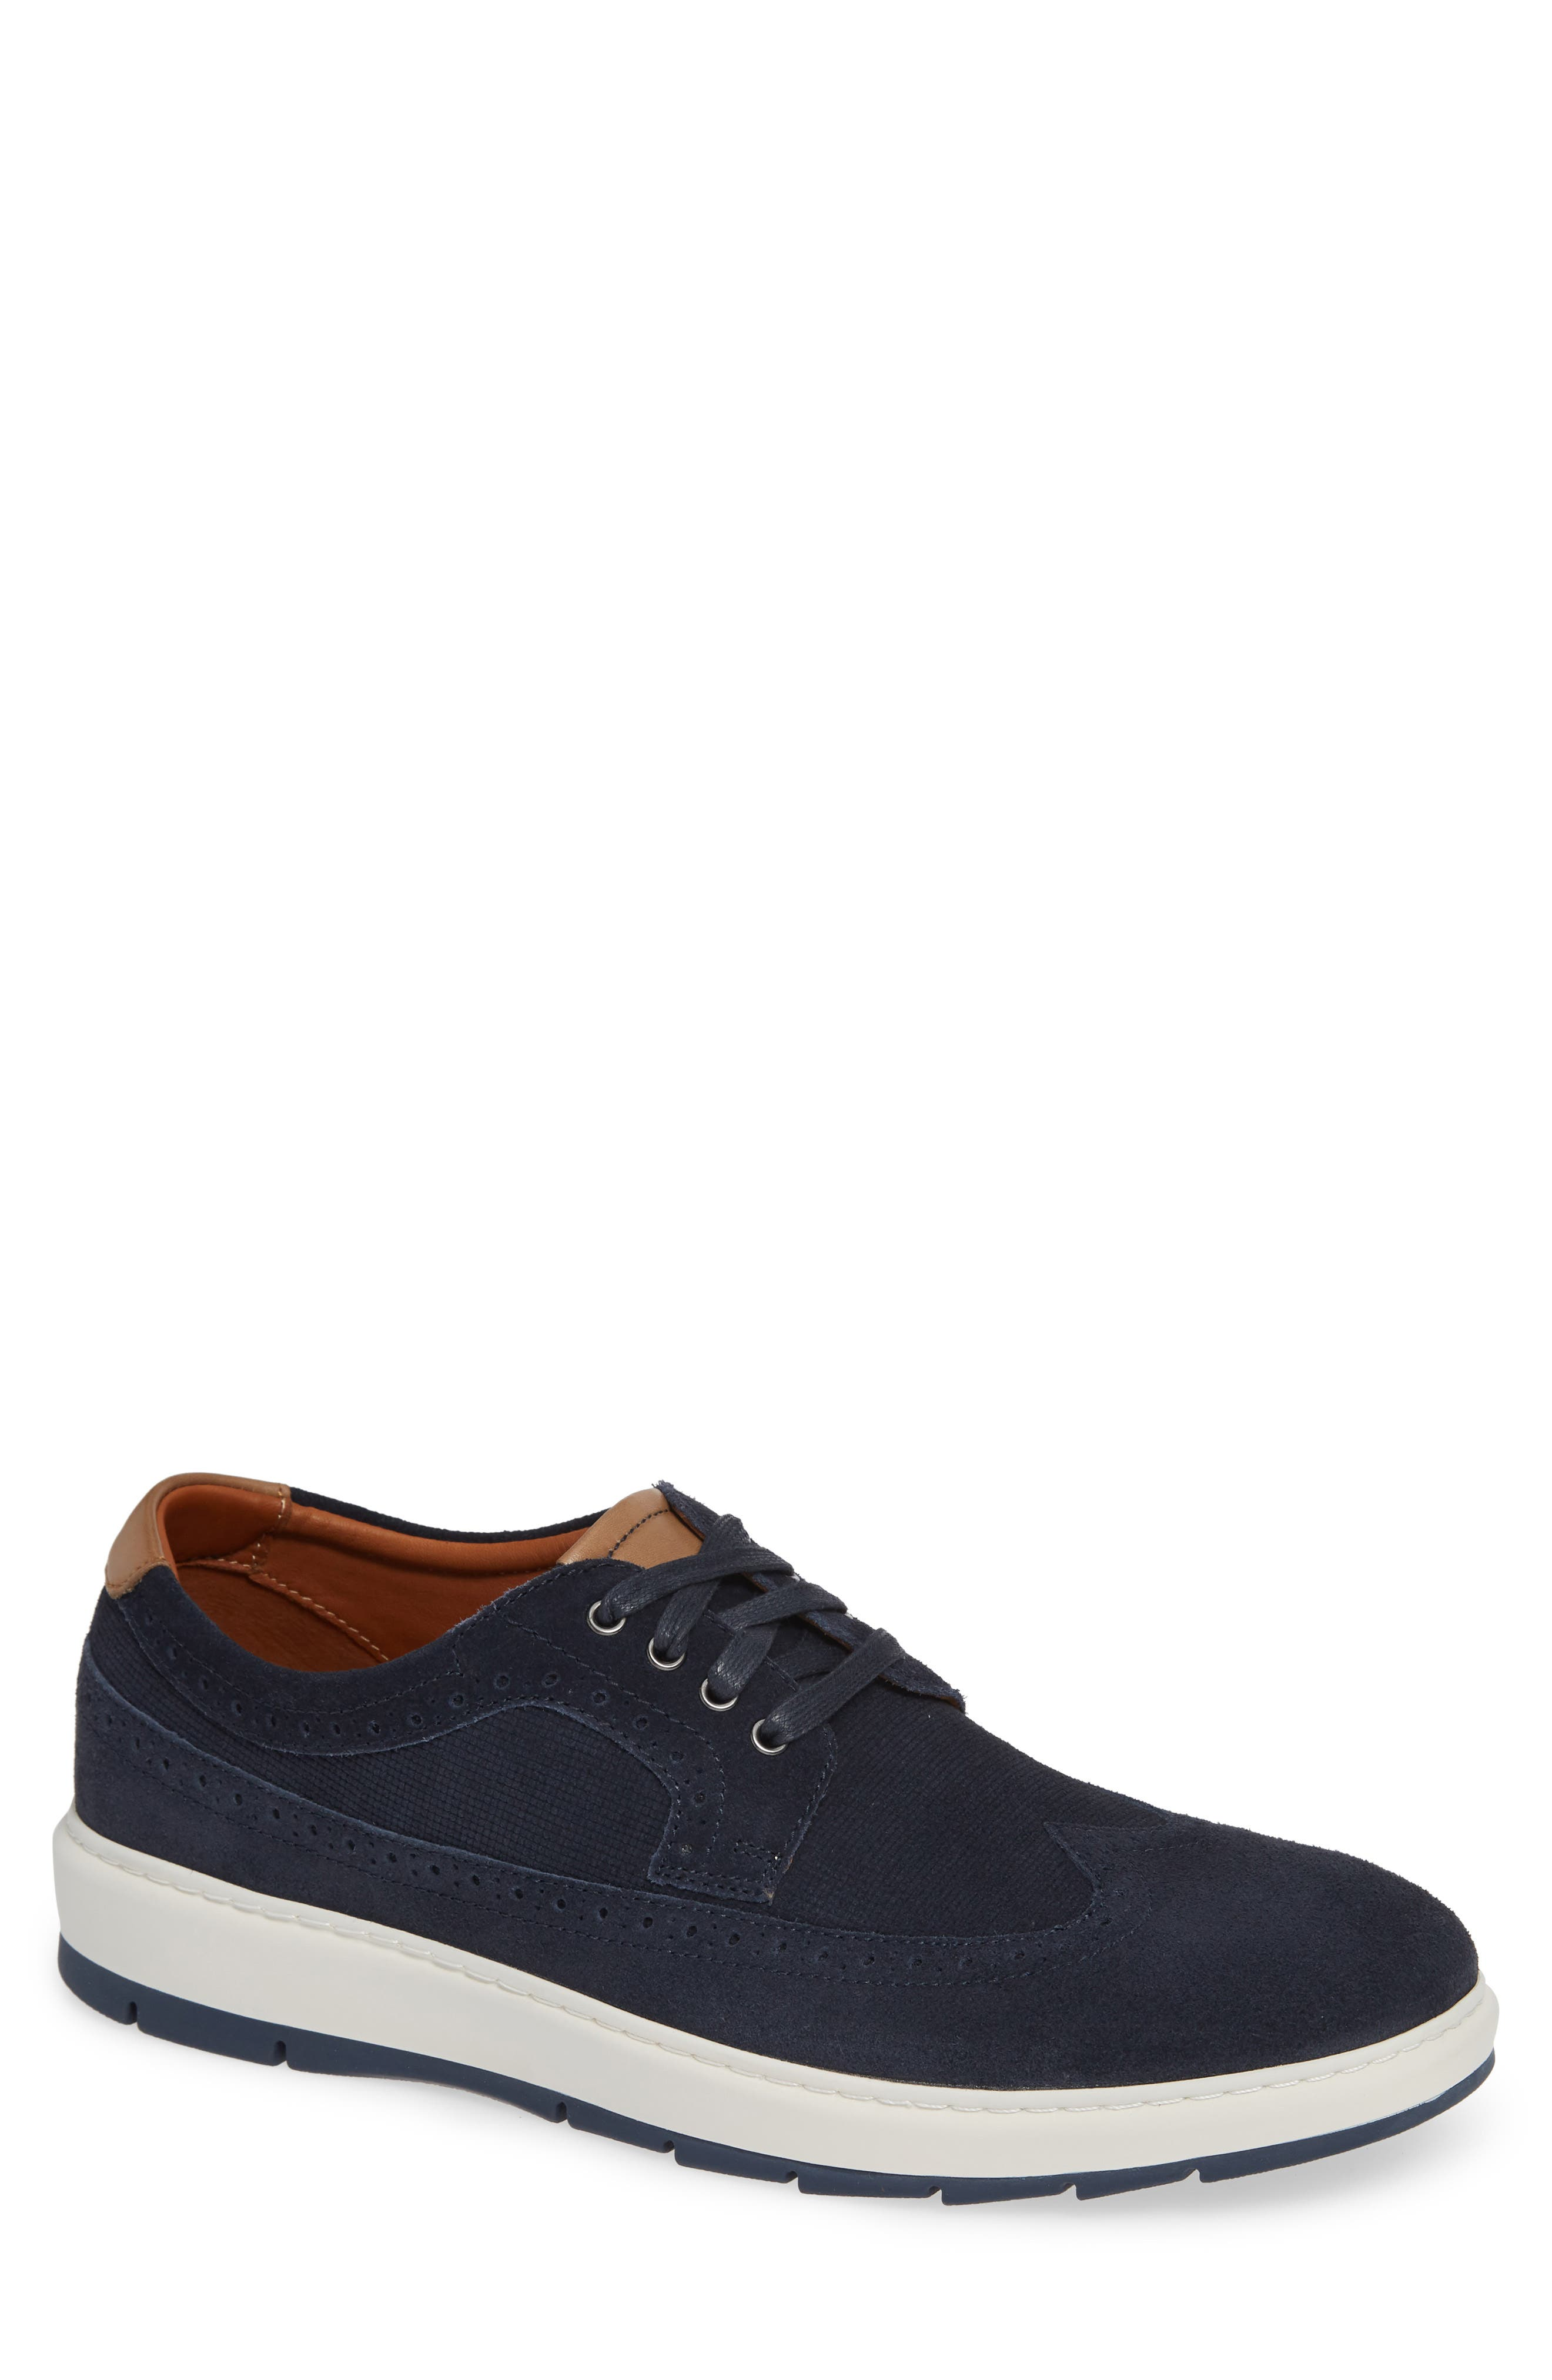 Johnston & Murphy Elliston Wingtip Sneaker, Blue